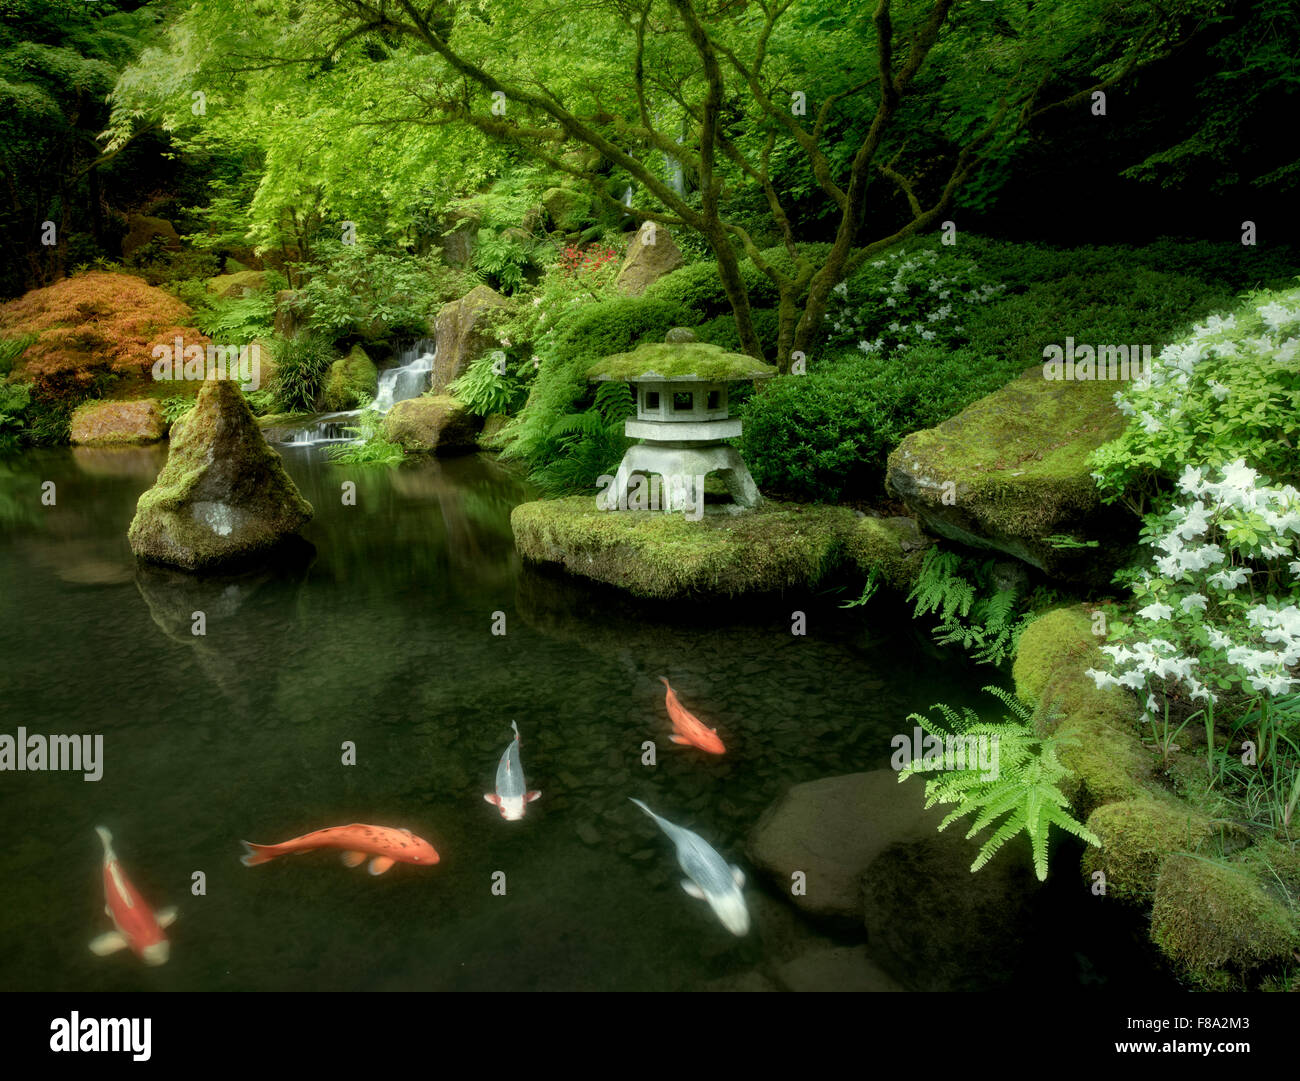 Waterfall Live Wallpaper Hd 3d Koi In Pond With Japanese Lantern And Waterfalls Japanese